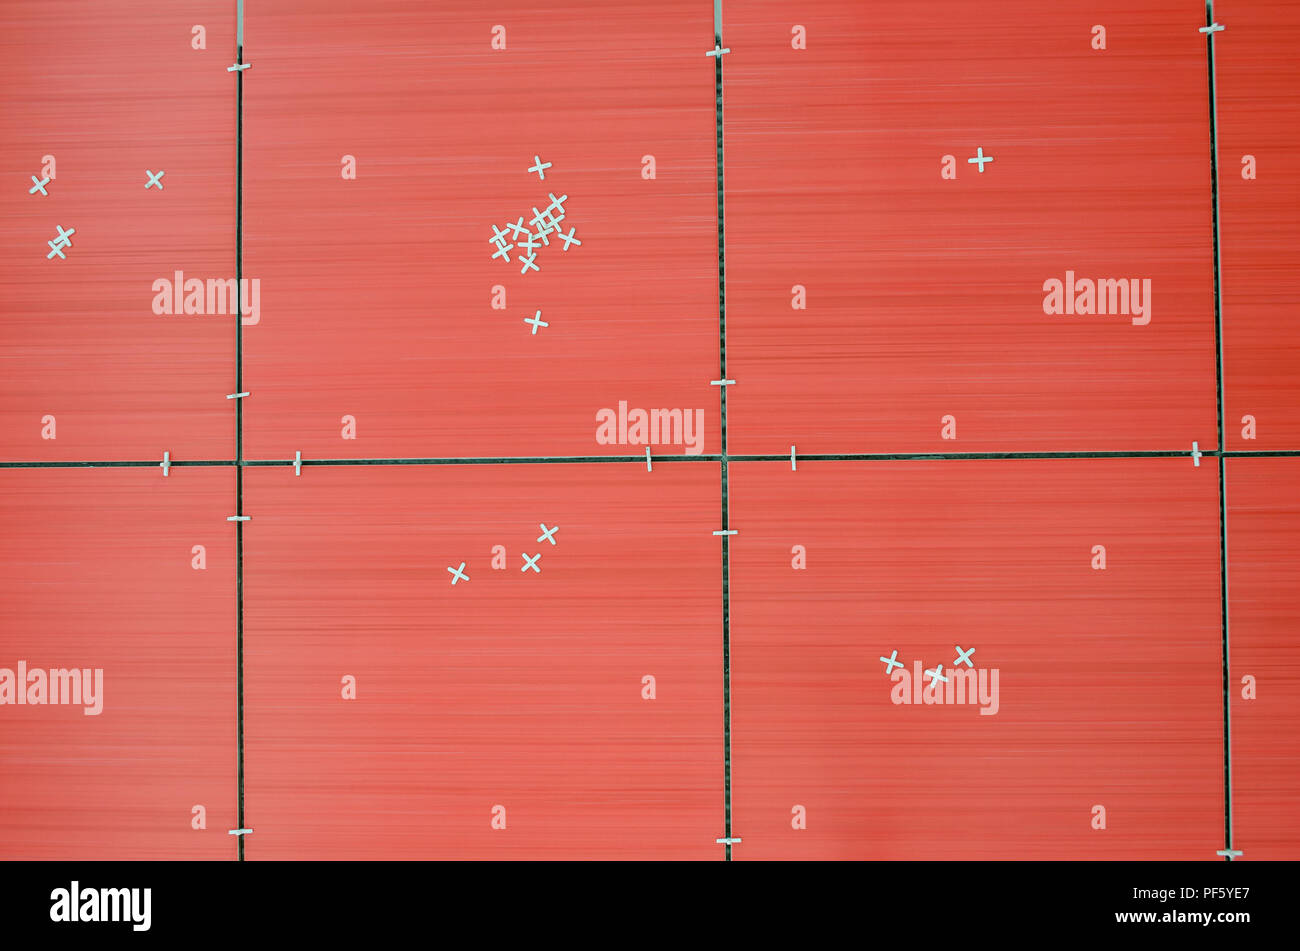 Top view of unfinished red ceramic tiles with tile spacers. - Stock Image